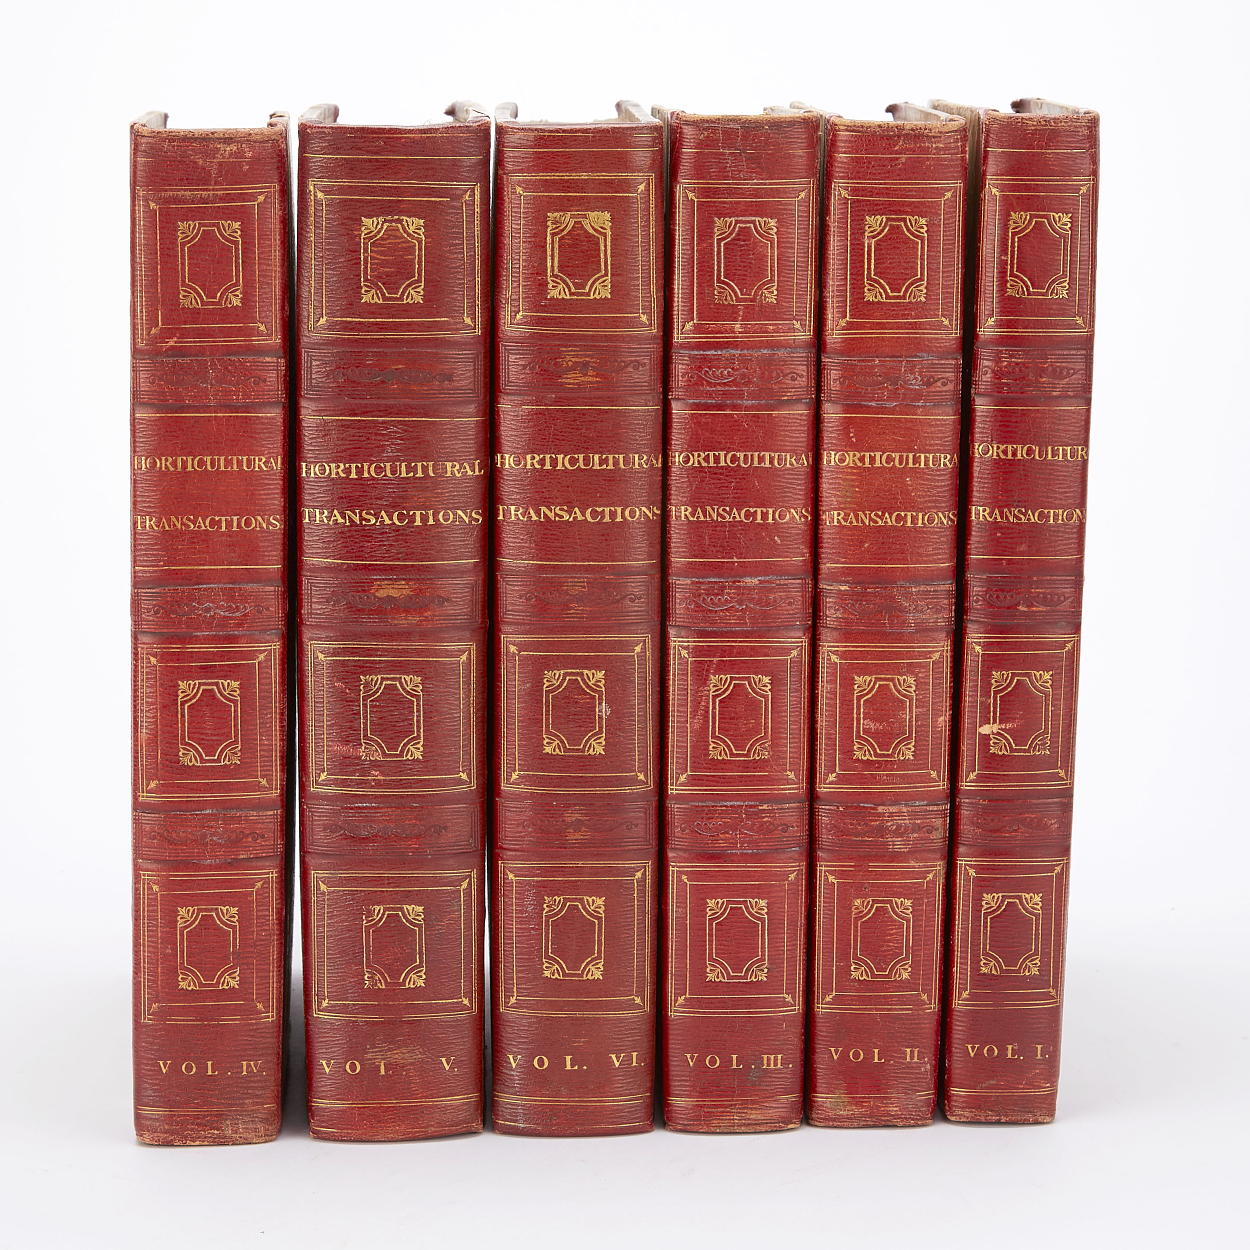 Transactions of the Horticultural Society 6 vols.